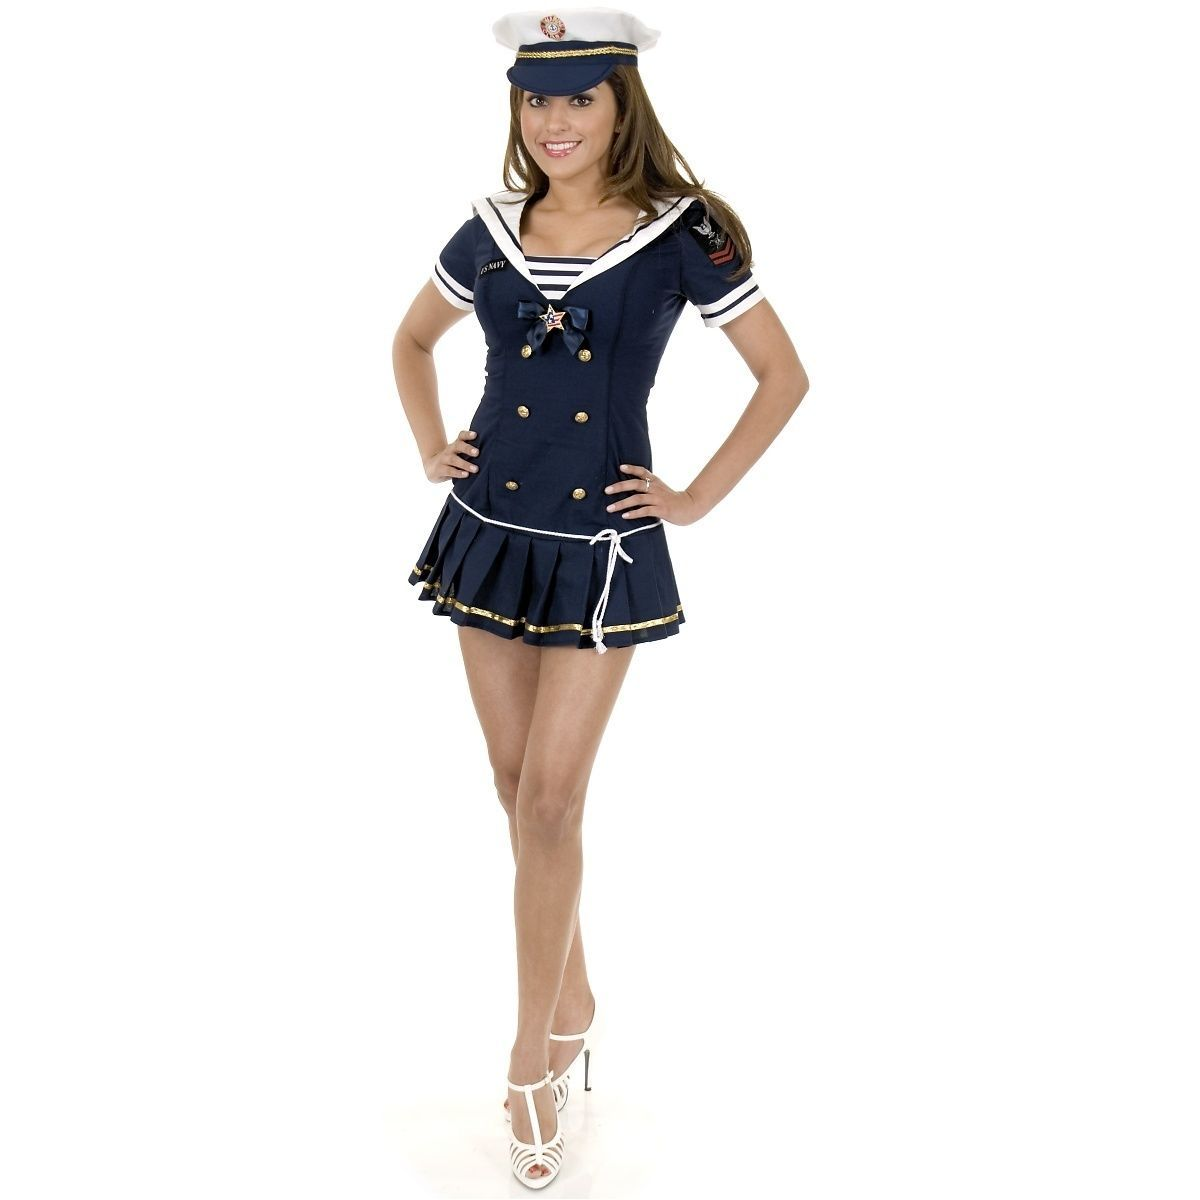 Gif winter australian teen girl sailor